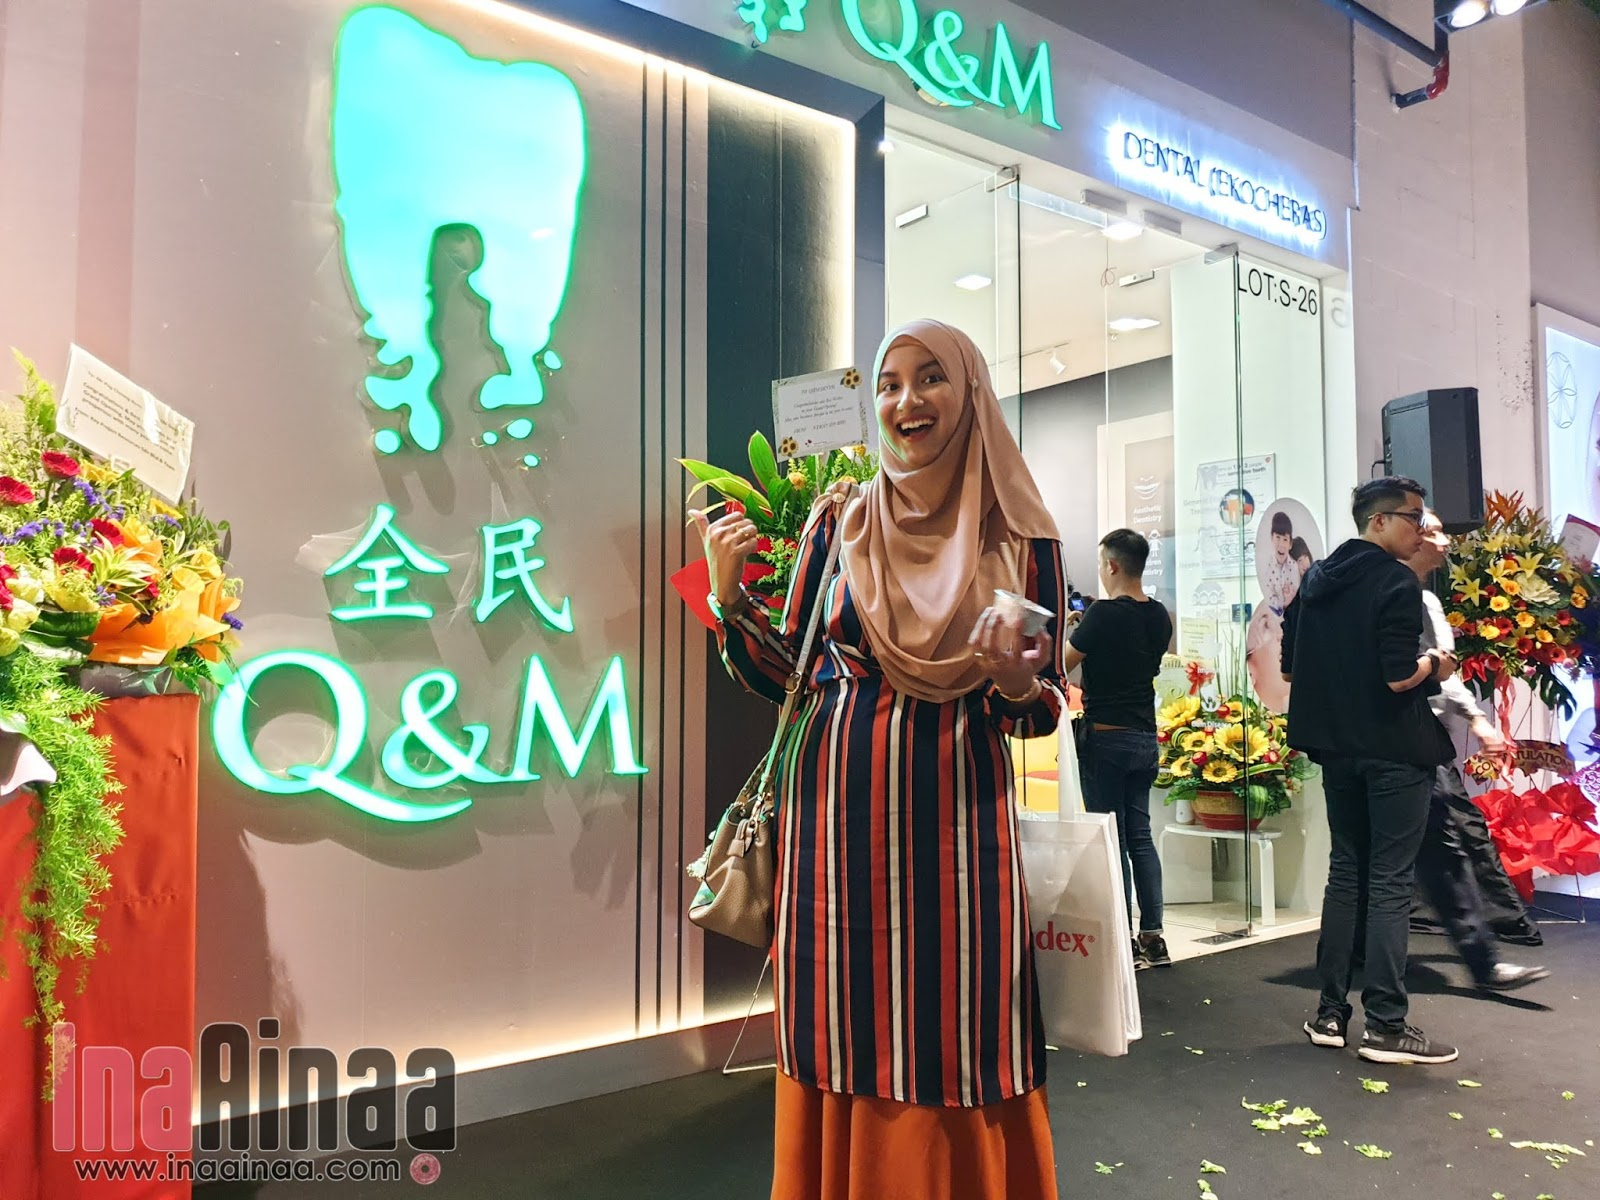 Q&M DENTAL CLINIC EKOCHERAS MALL- Hak Milik Ina Ainaa